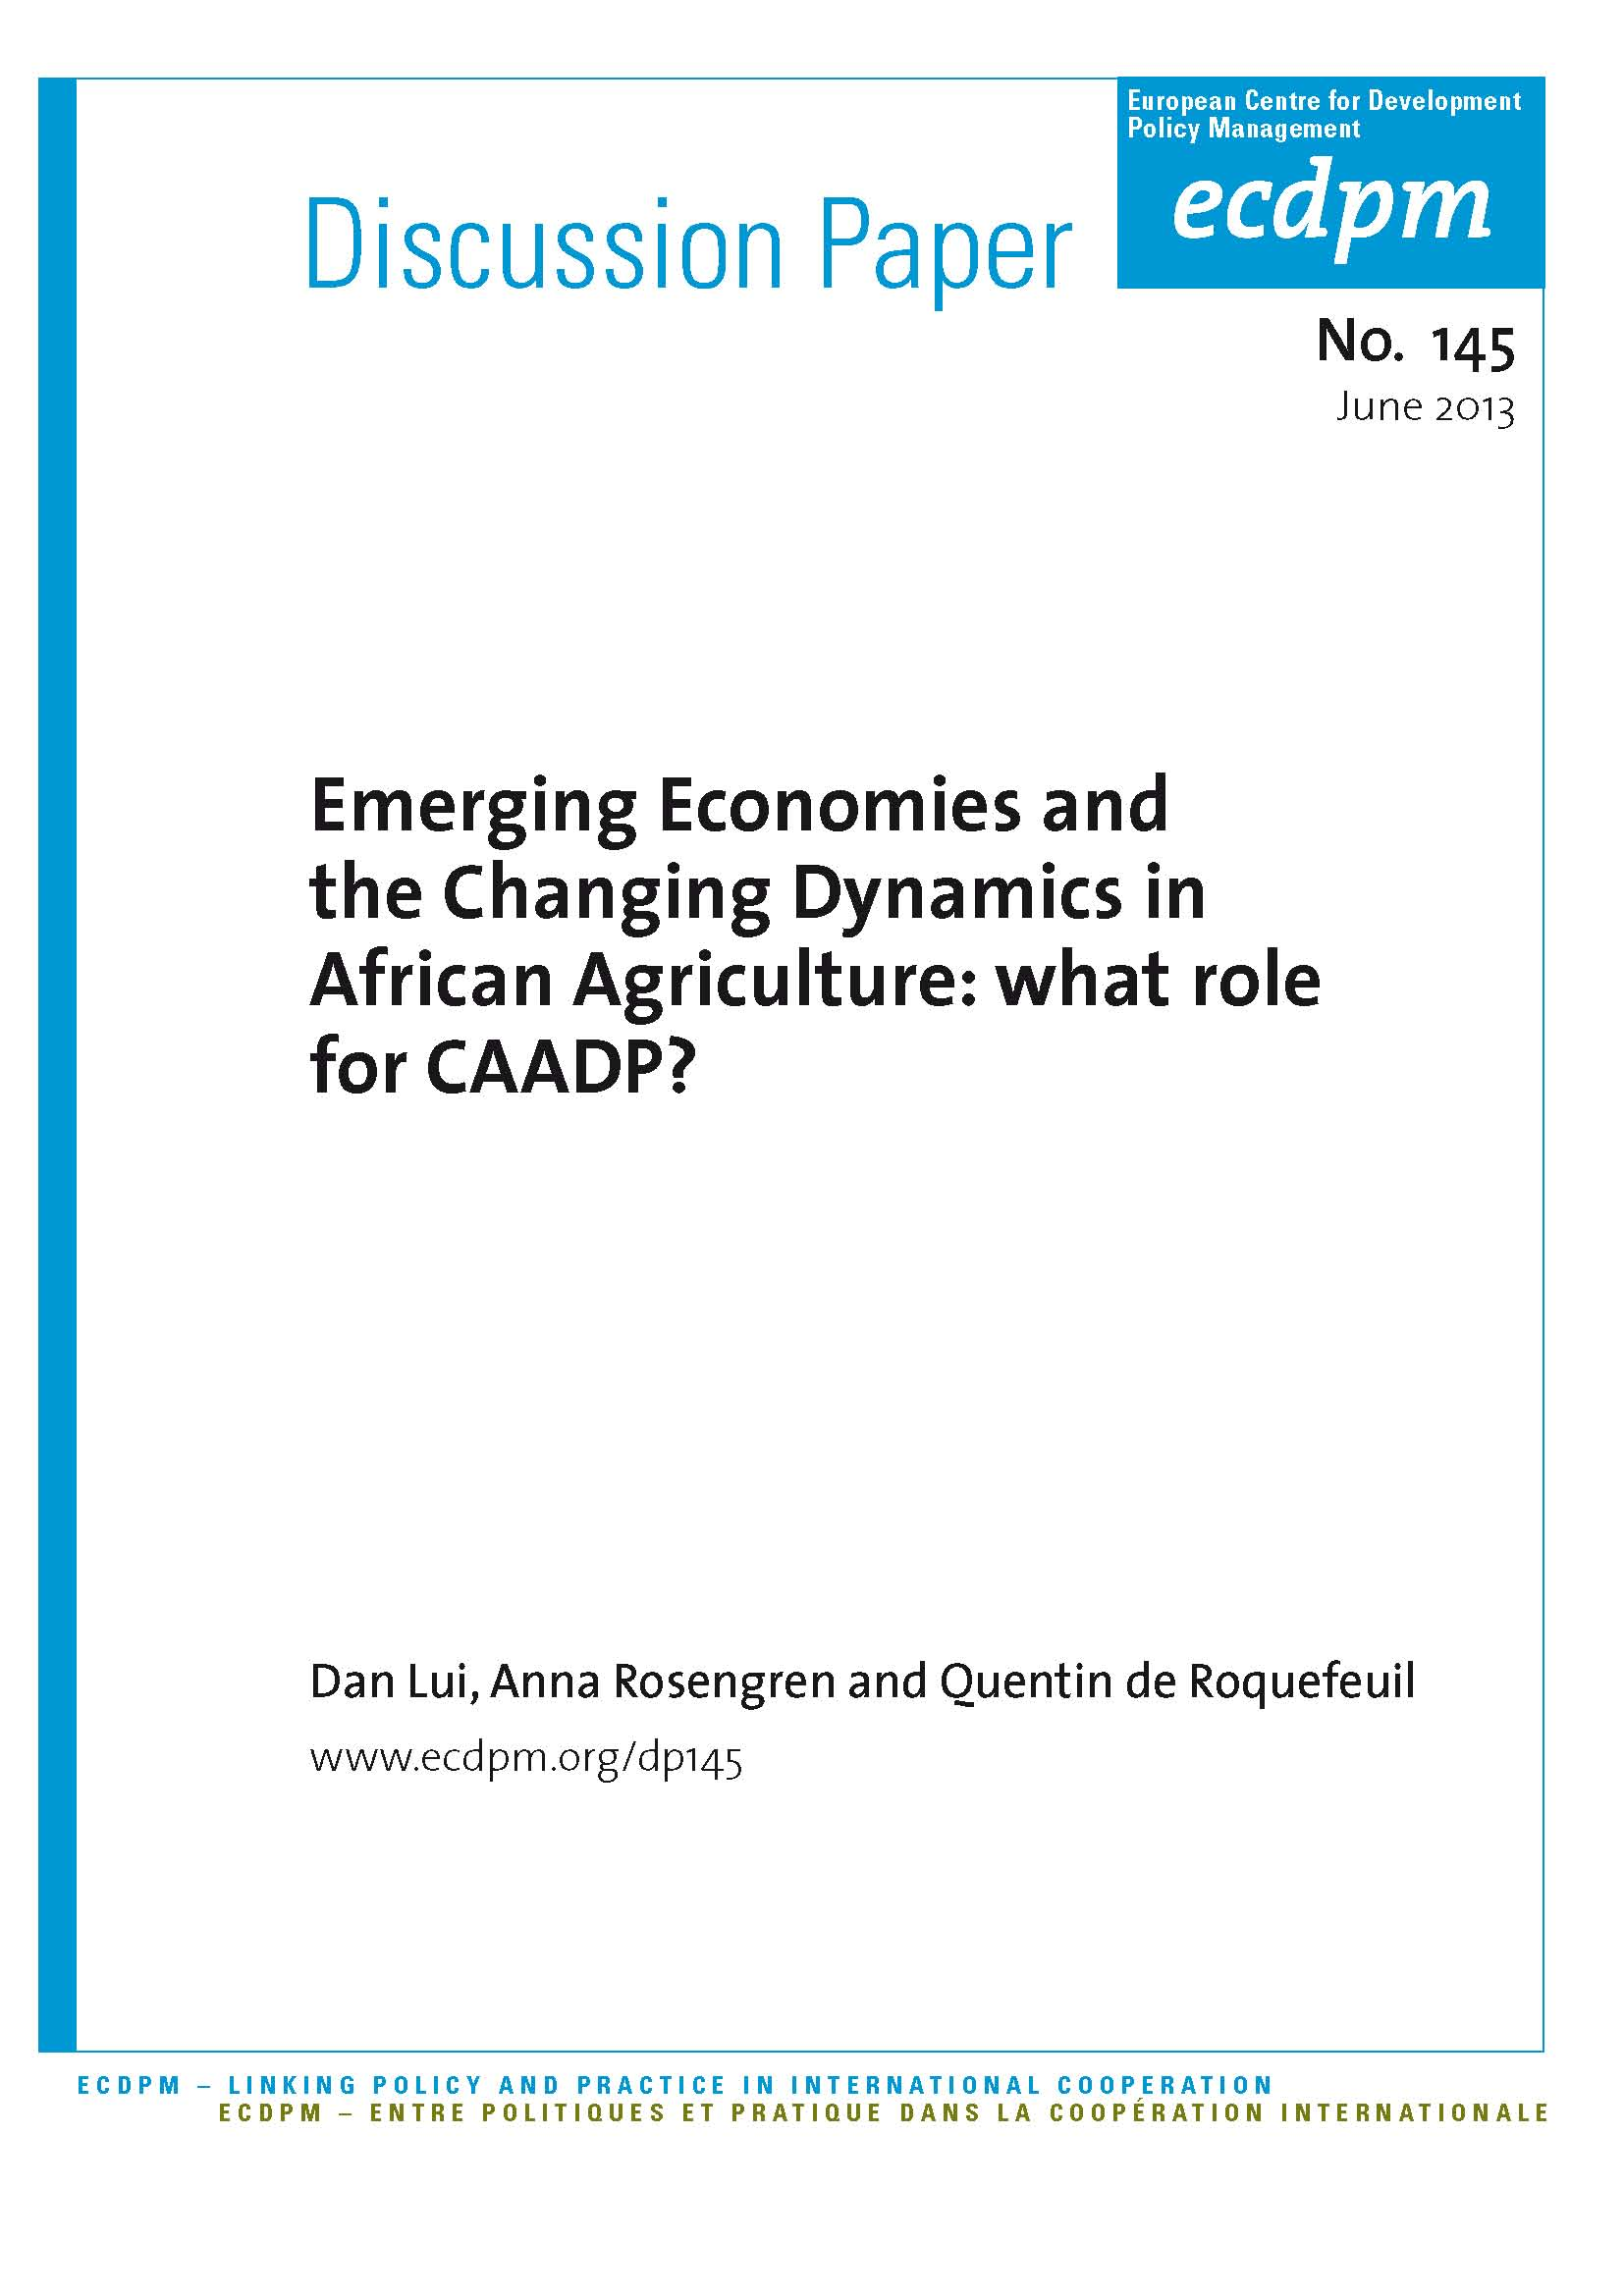 Emerging Economies and the Changing Dynamics in African Agriculture: What Role for CAADP?